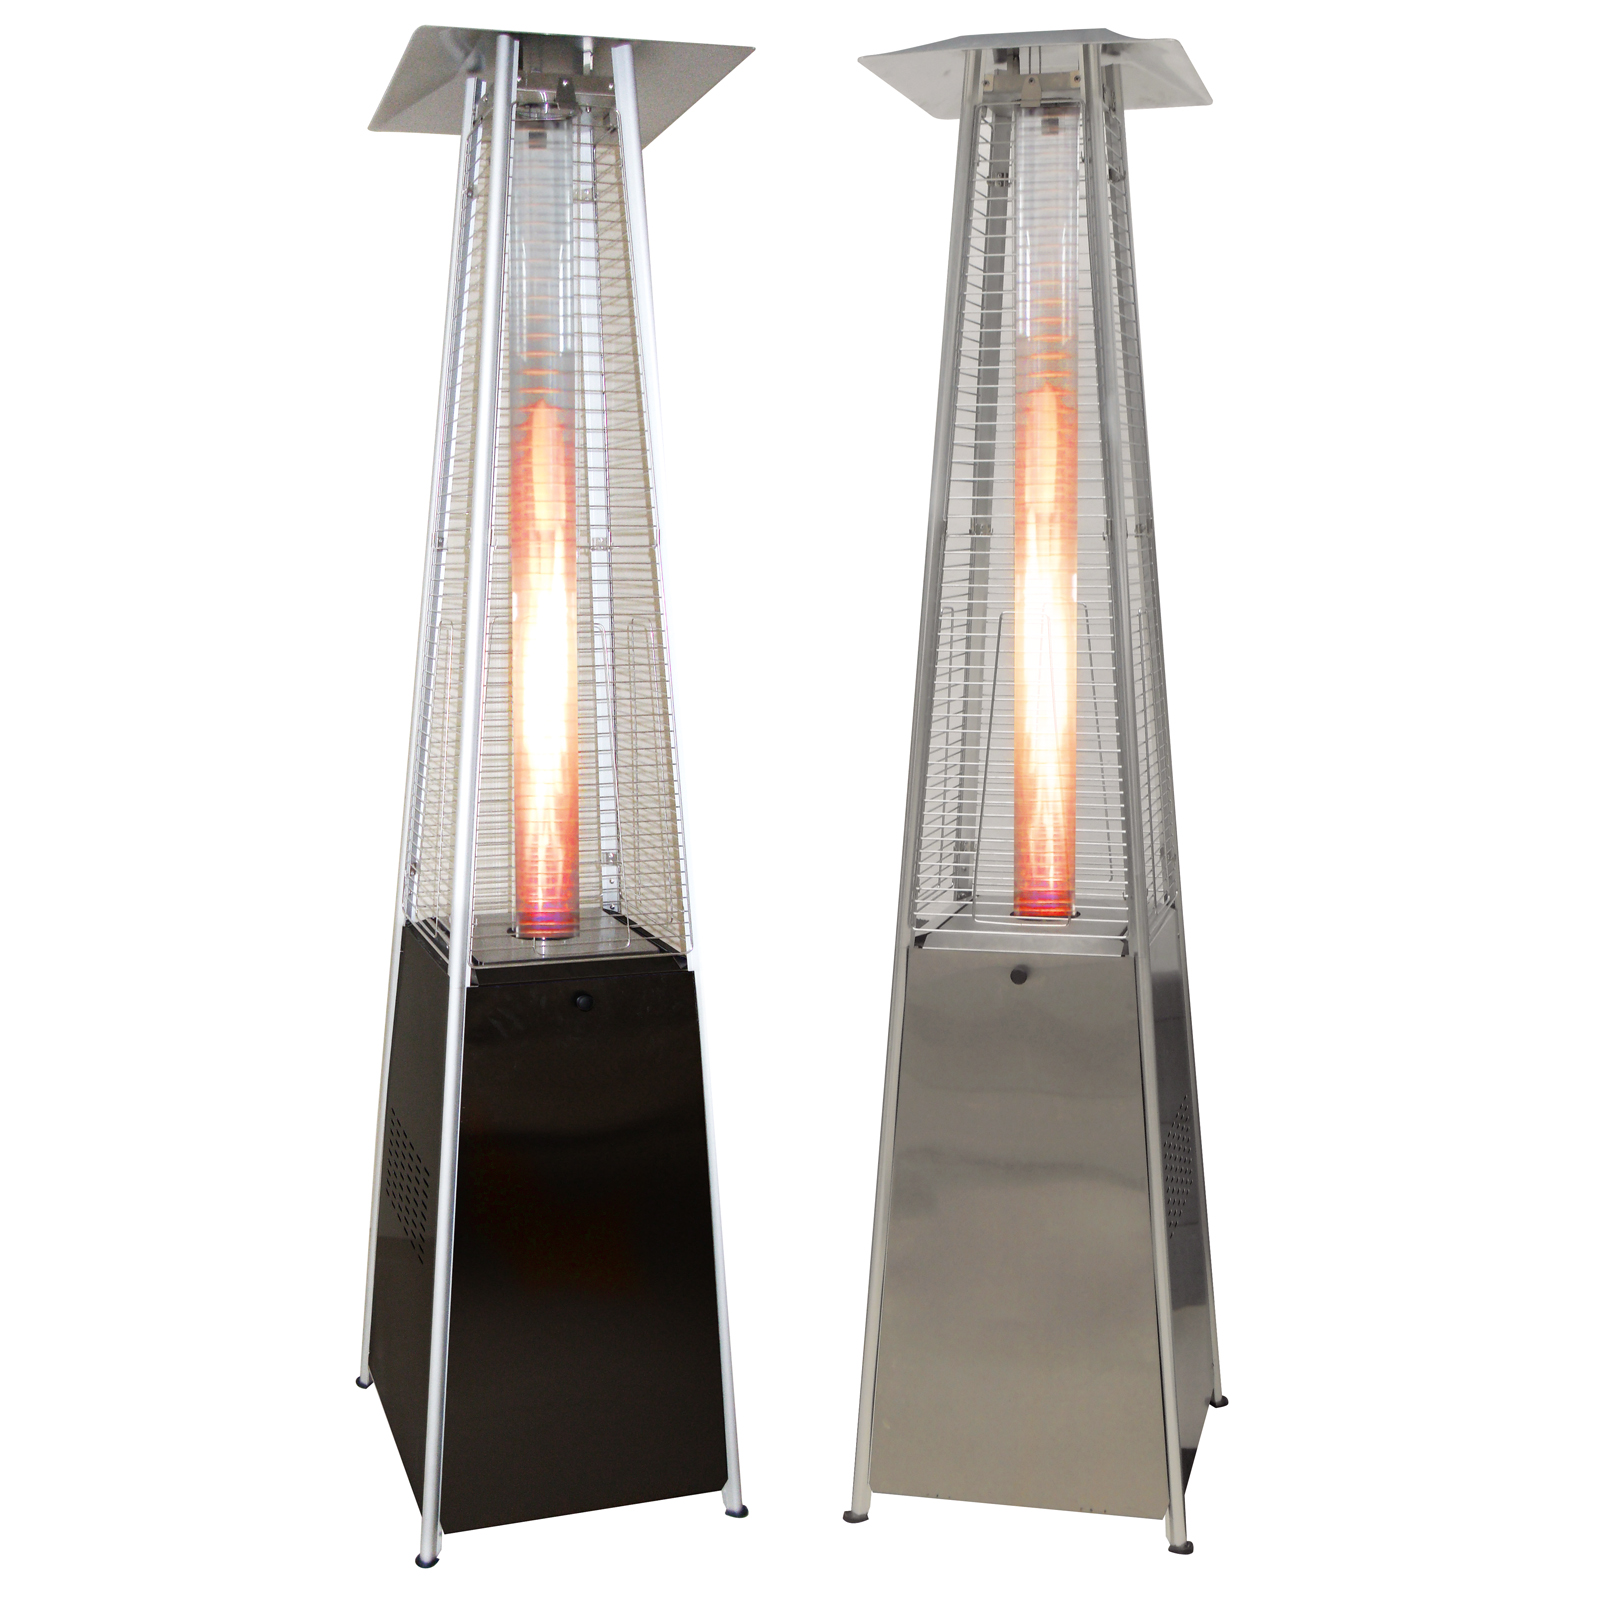 Pyramid Heaters